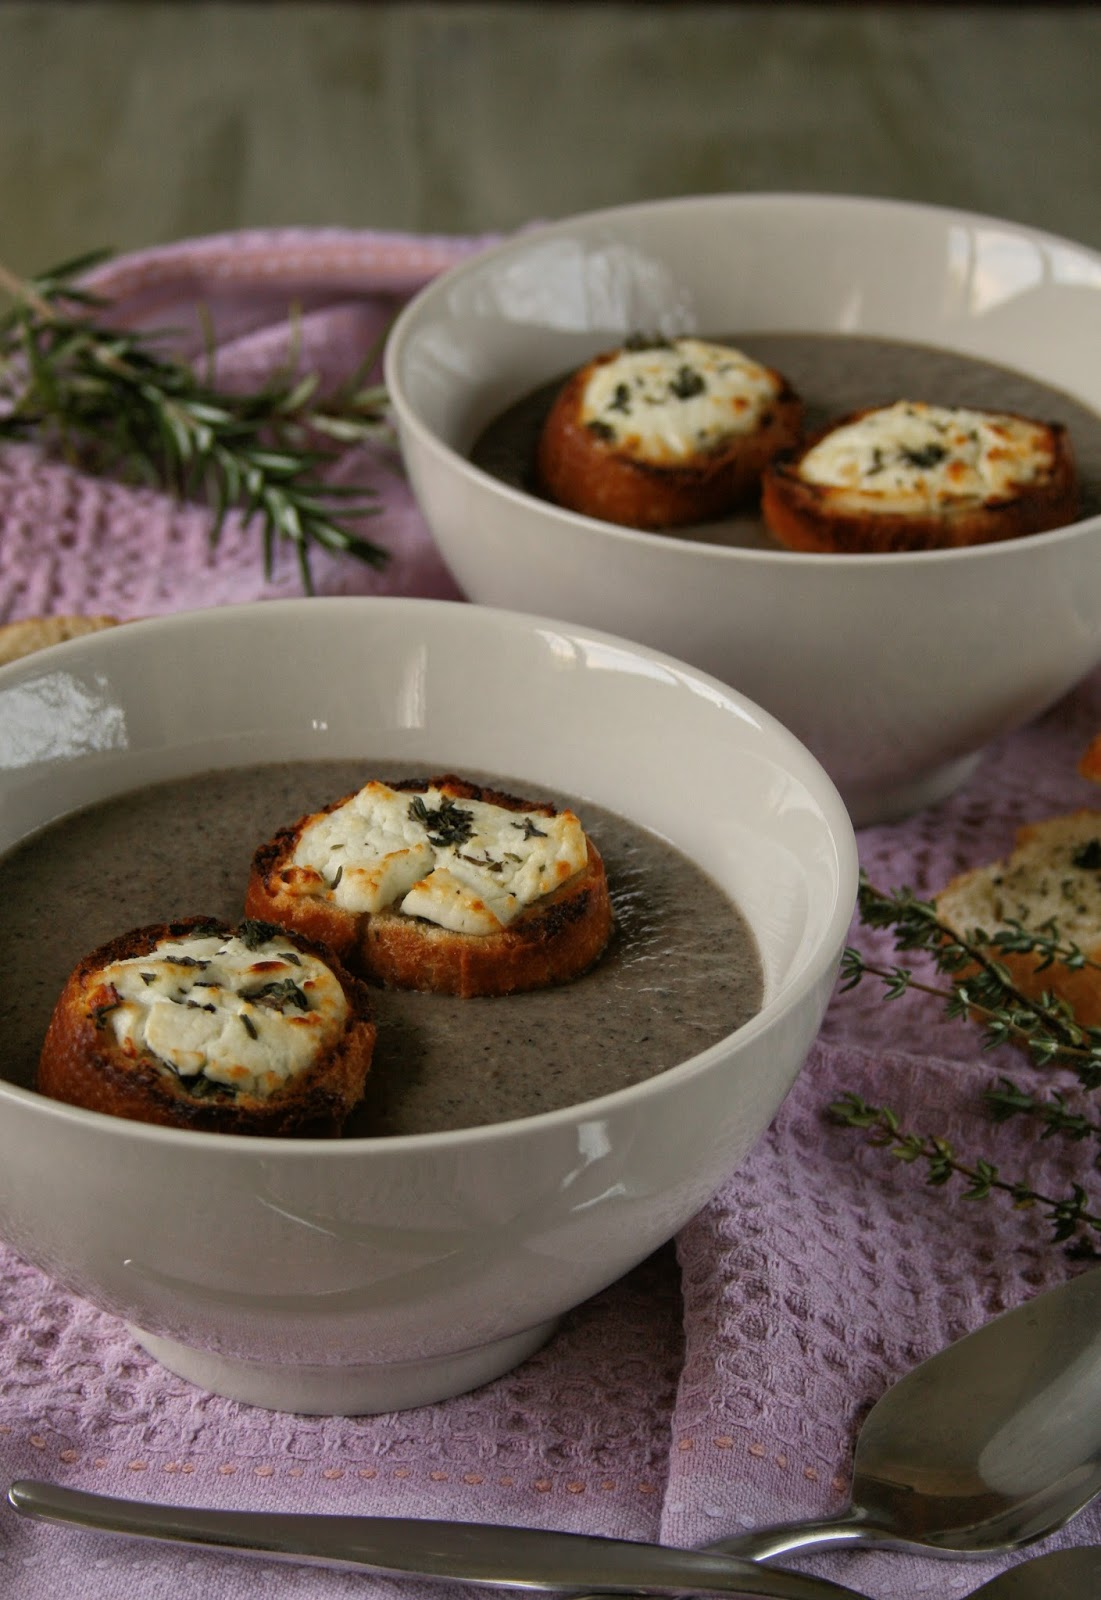 Creamy mushroom soup with chevin toasts.